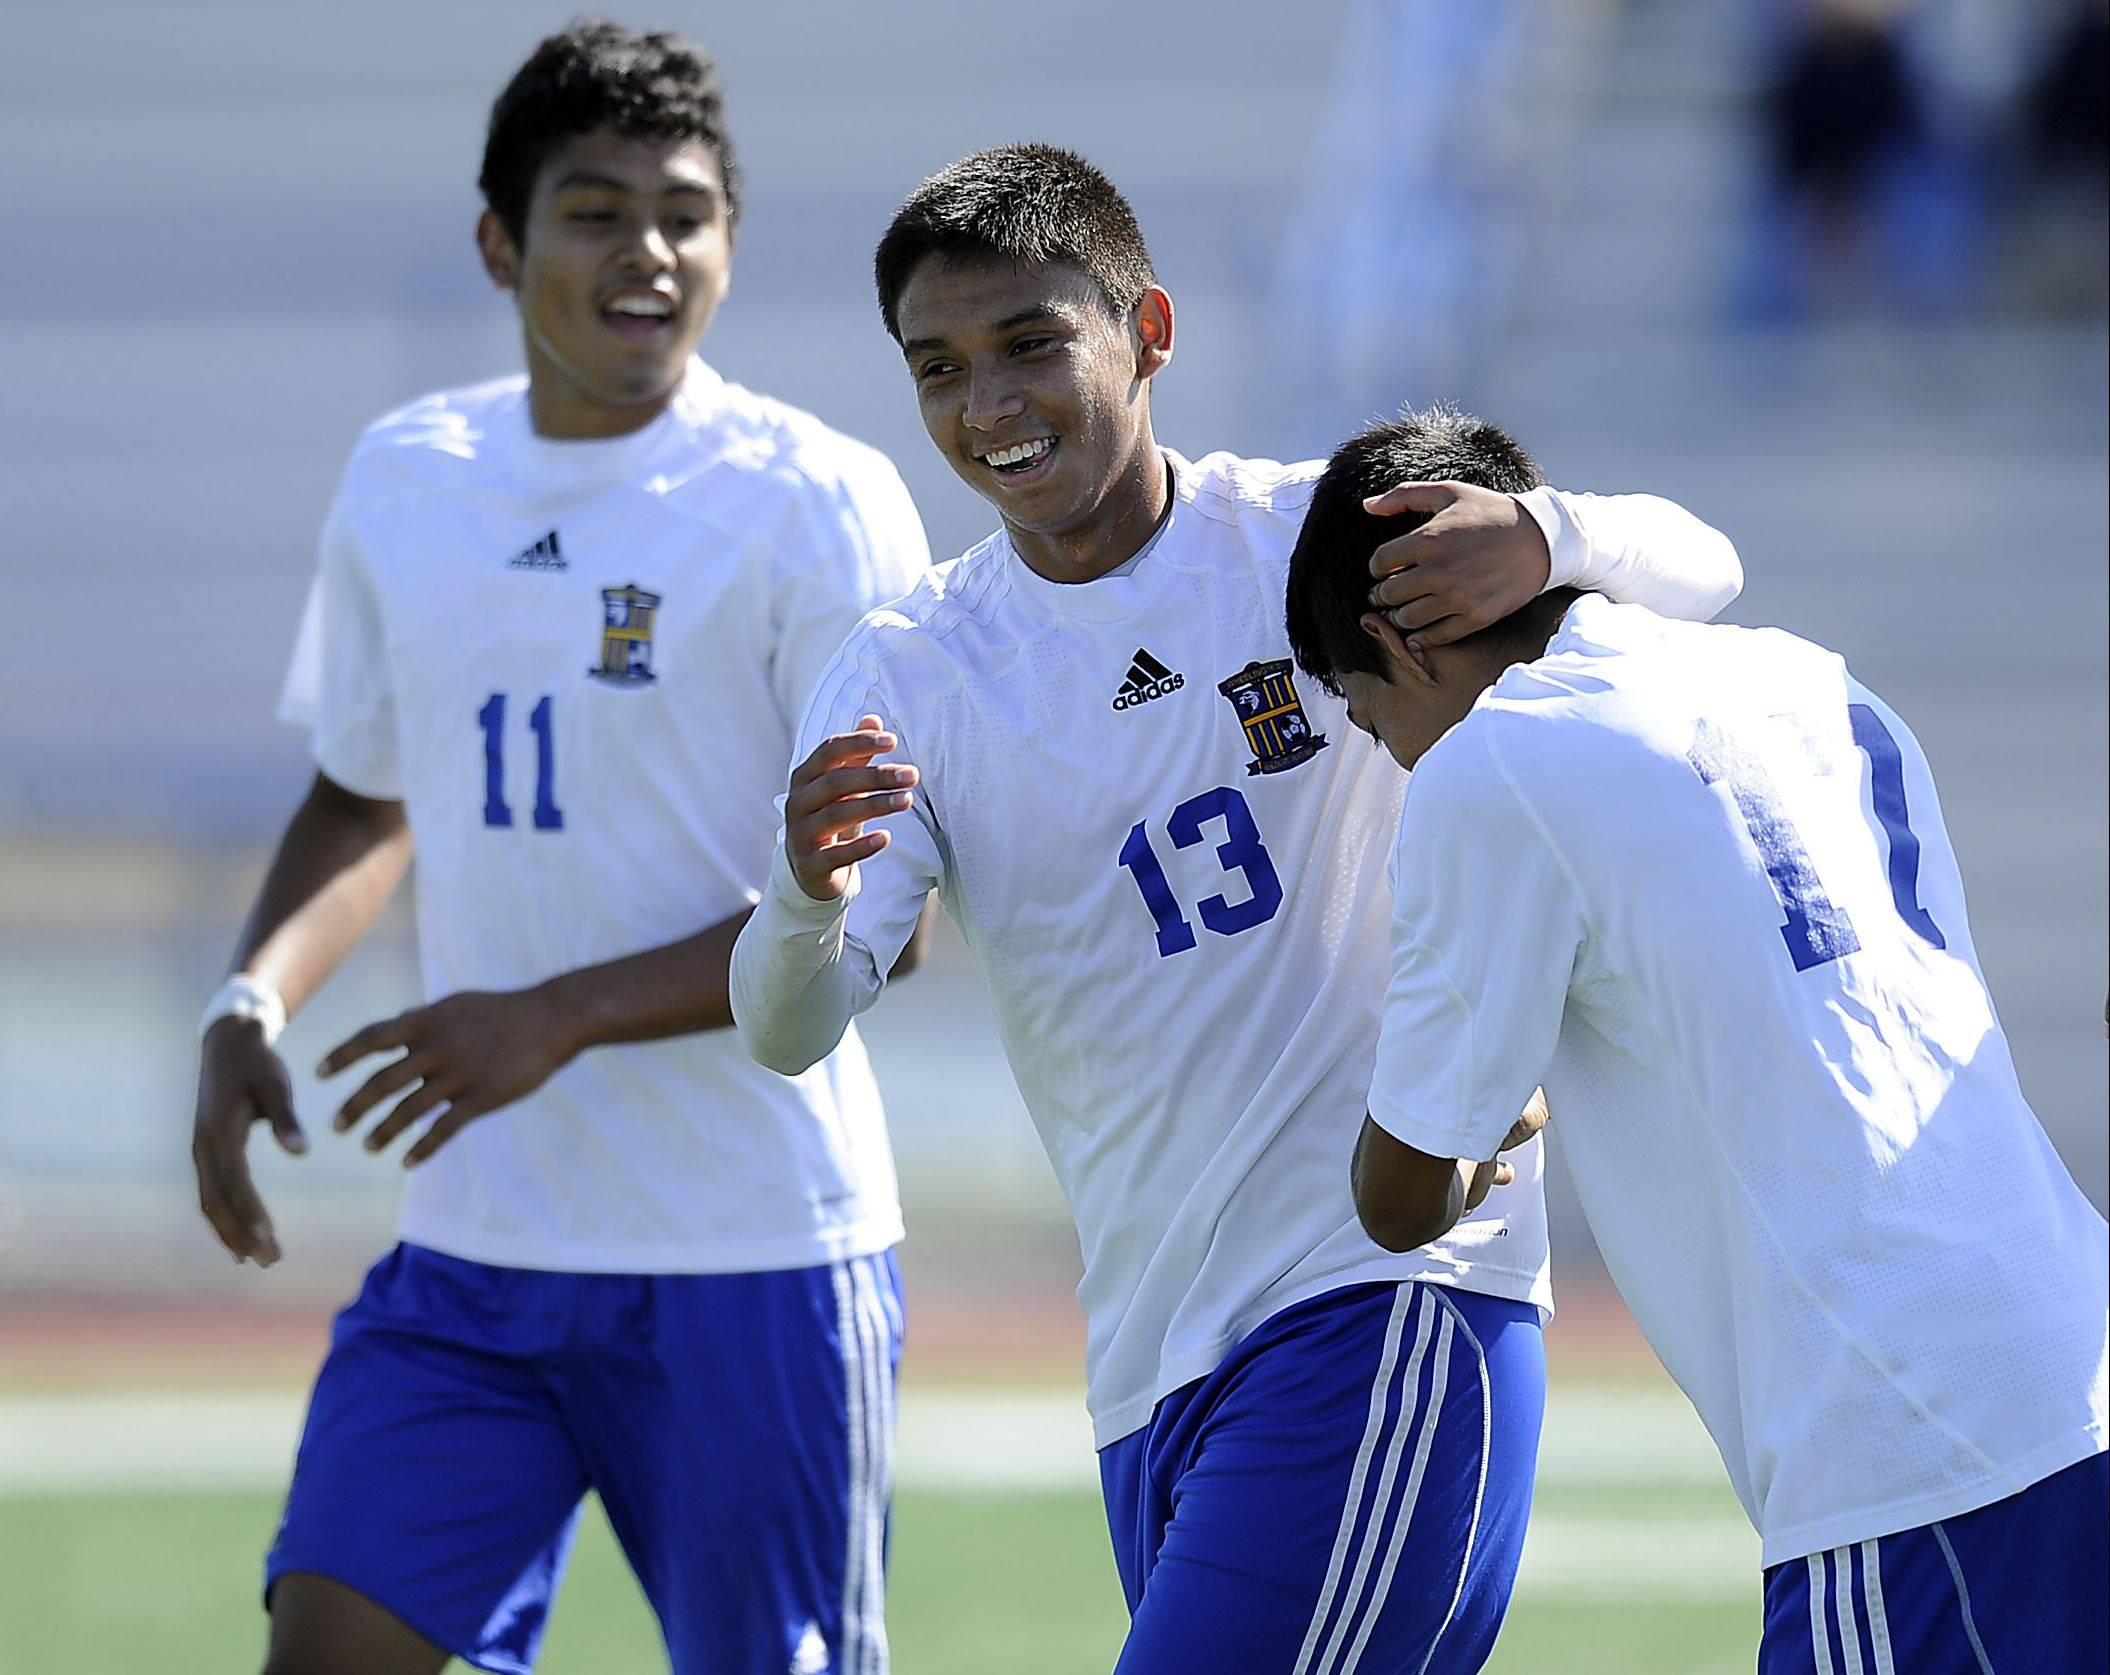 From left, Wheeling�s Luis Herrera, Jose Garcia and Fabian Acosta celebrate a goal early this season. Garcia�s knack for generating goals has the Wildcats in Saturday�s Evanston sectional final.